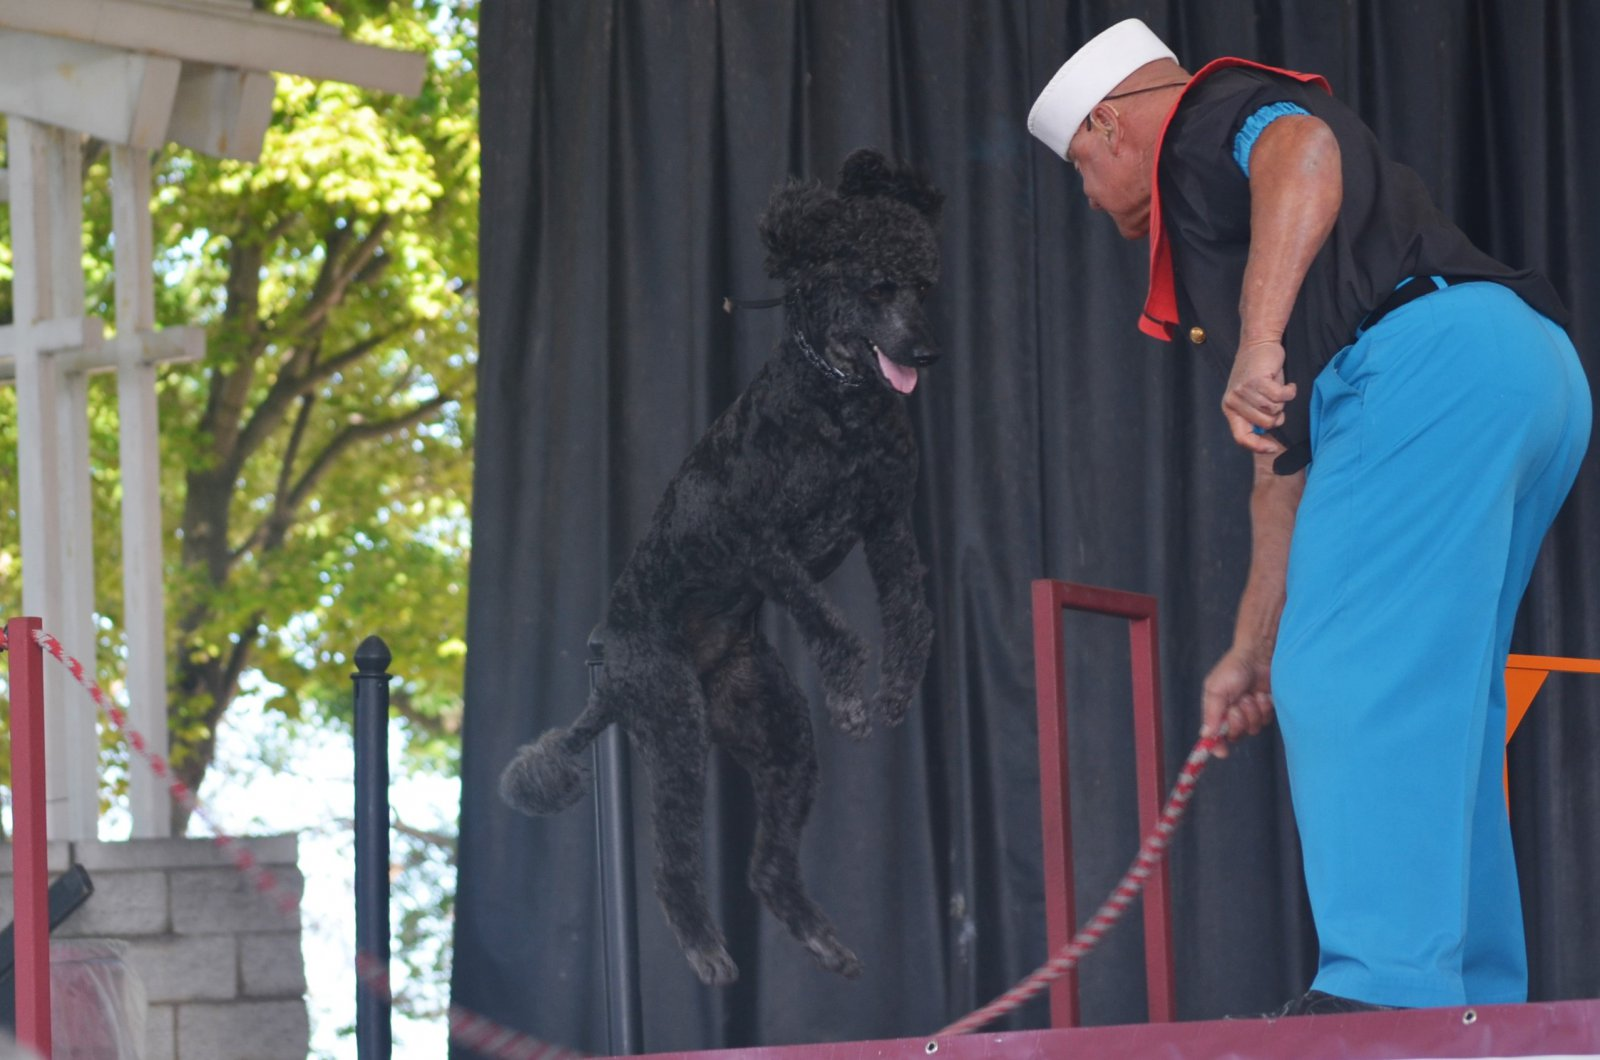 https://urbanmilwaukee.com/wp-content/gallery/summerfest/sailor-the-poodle-and-his-owner-alex-rothacker_pfest18.jpg